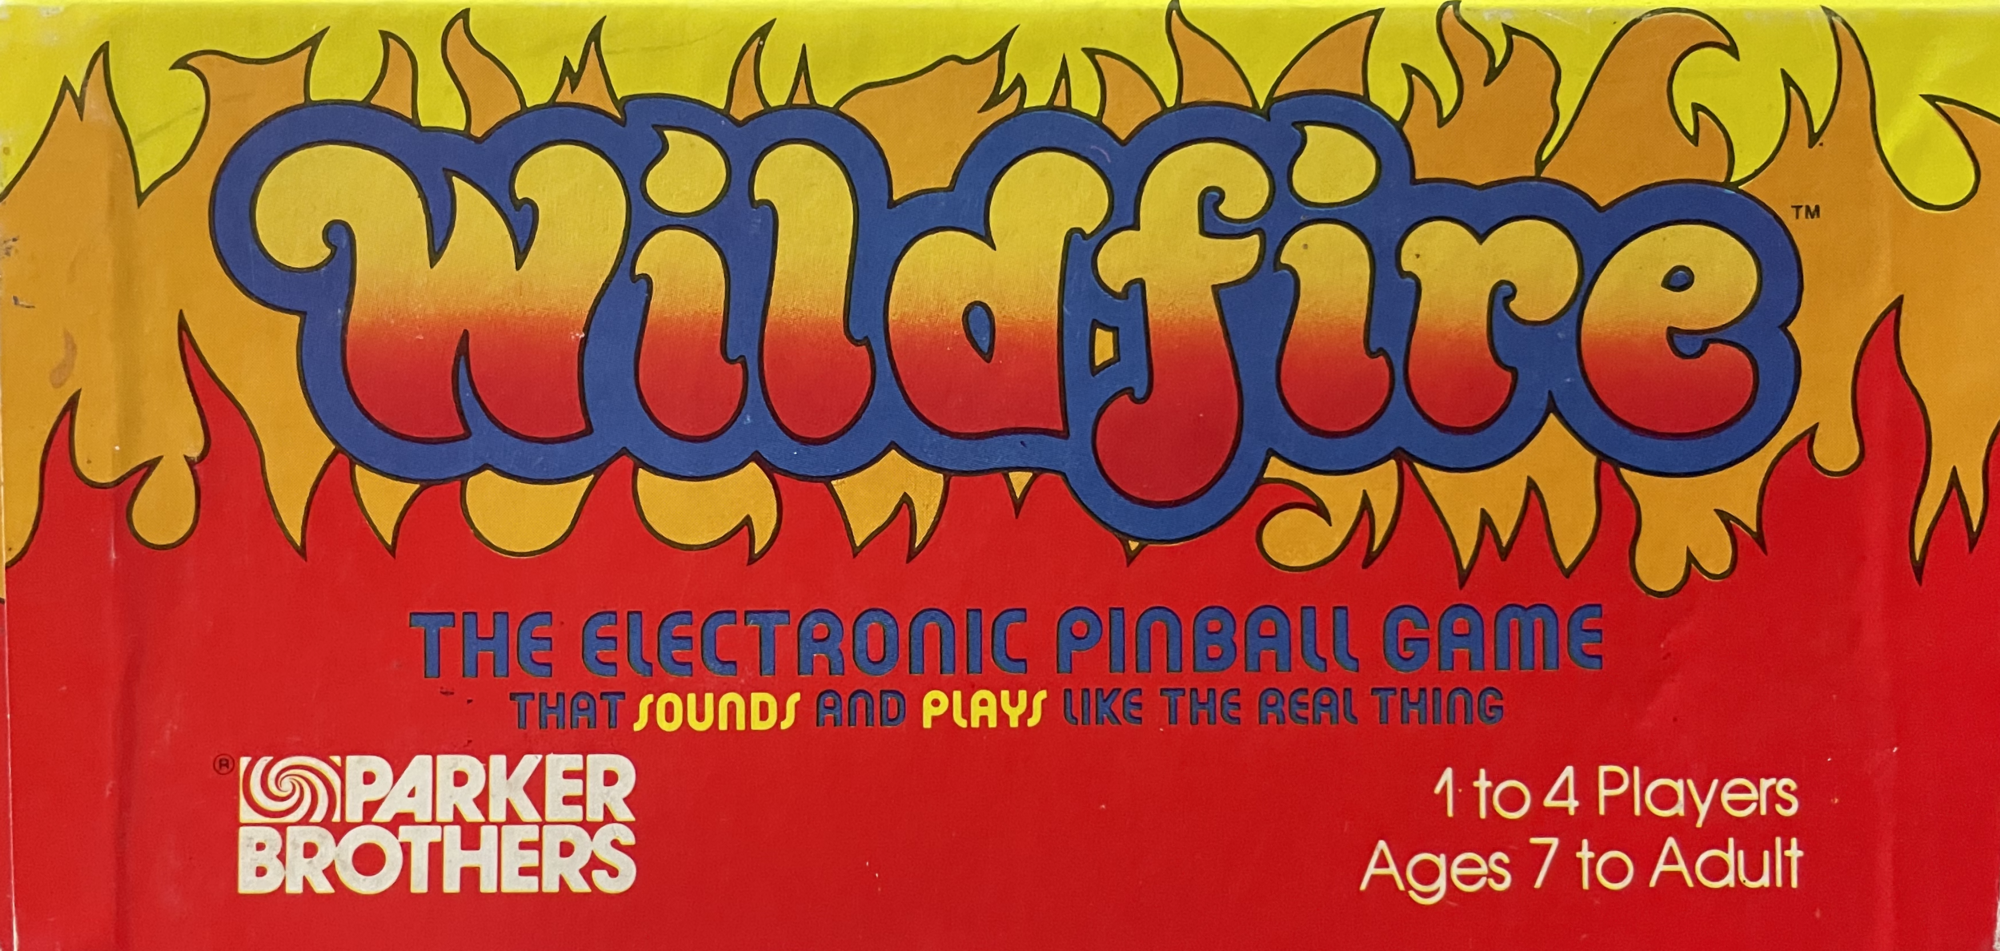 Wildfire Pinball by Parker Brothers (1979) — side panel of box